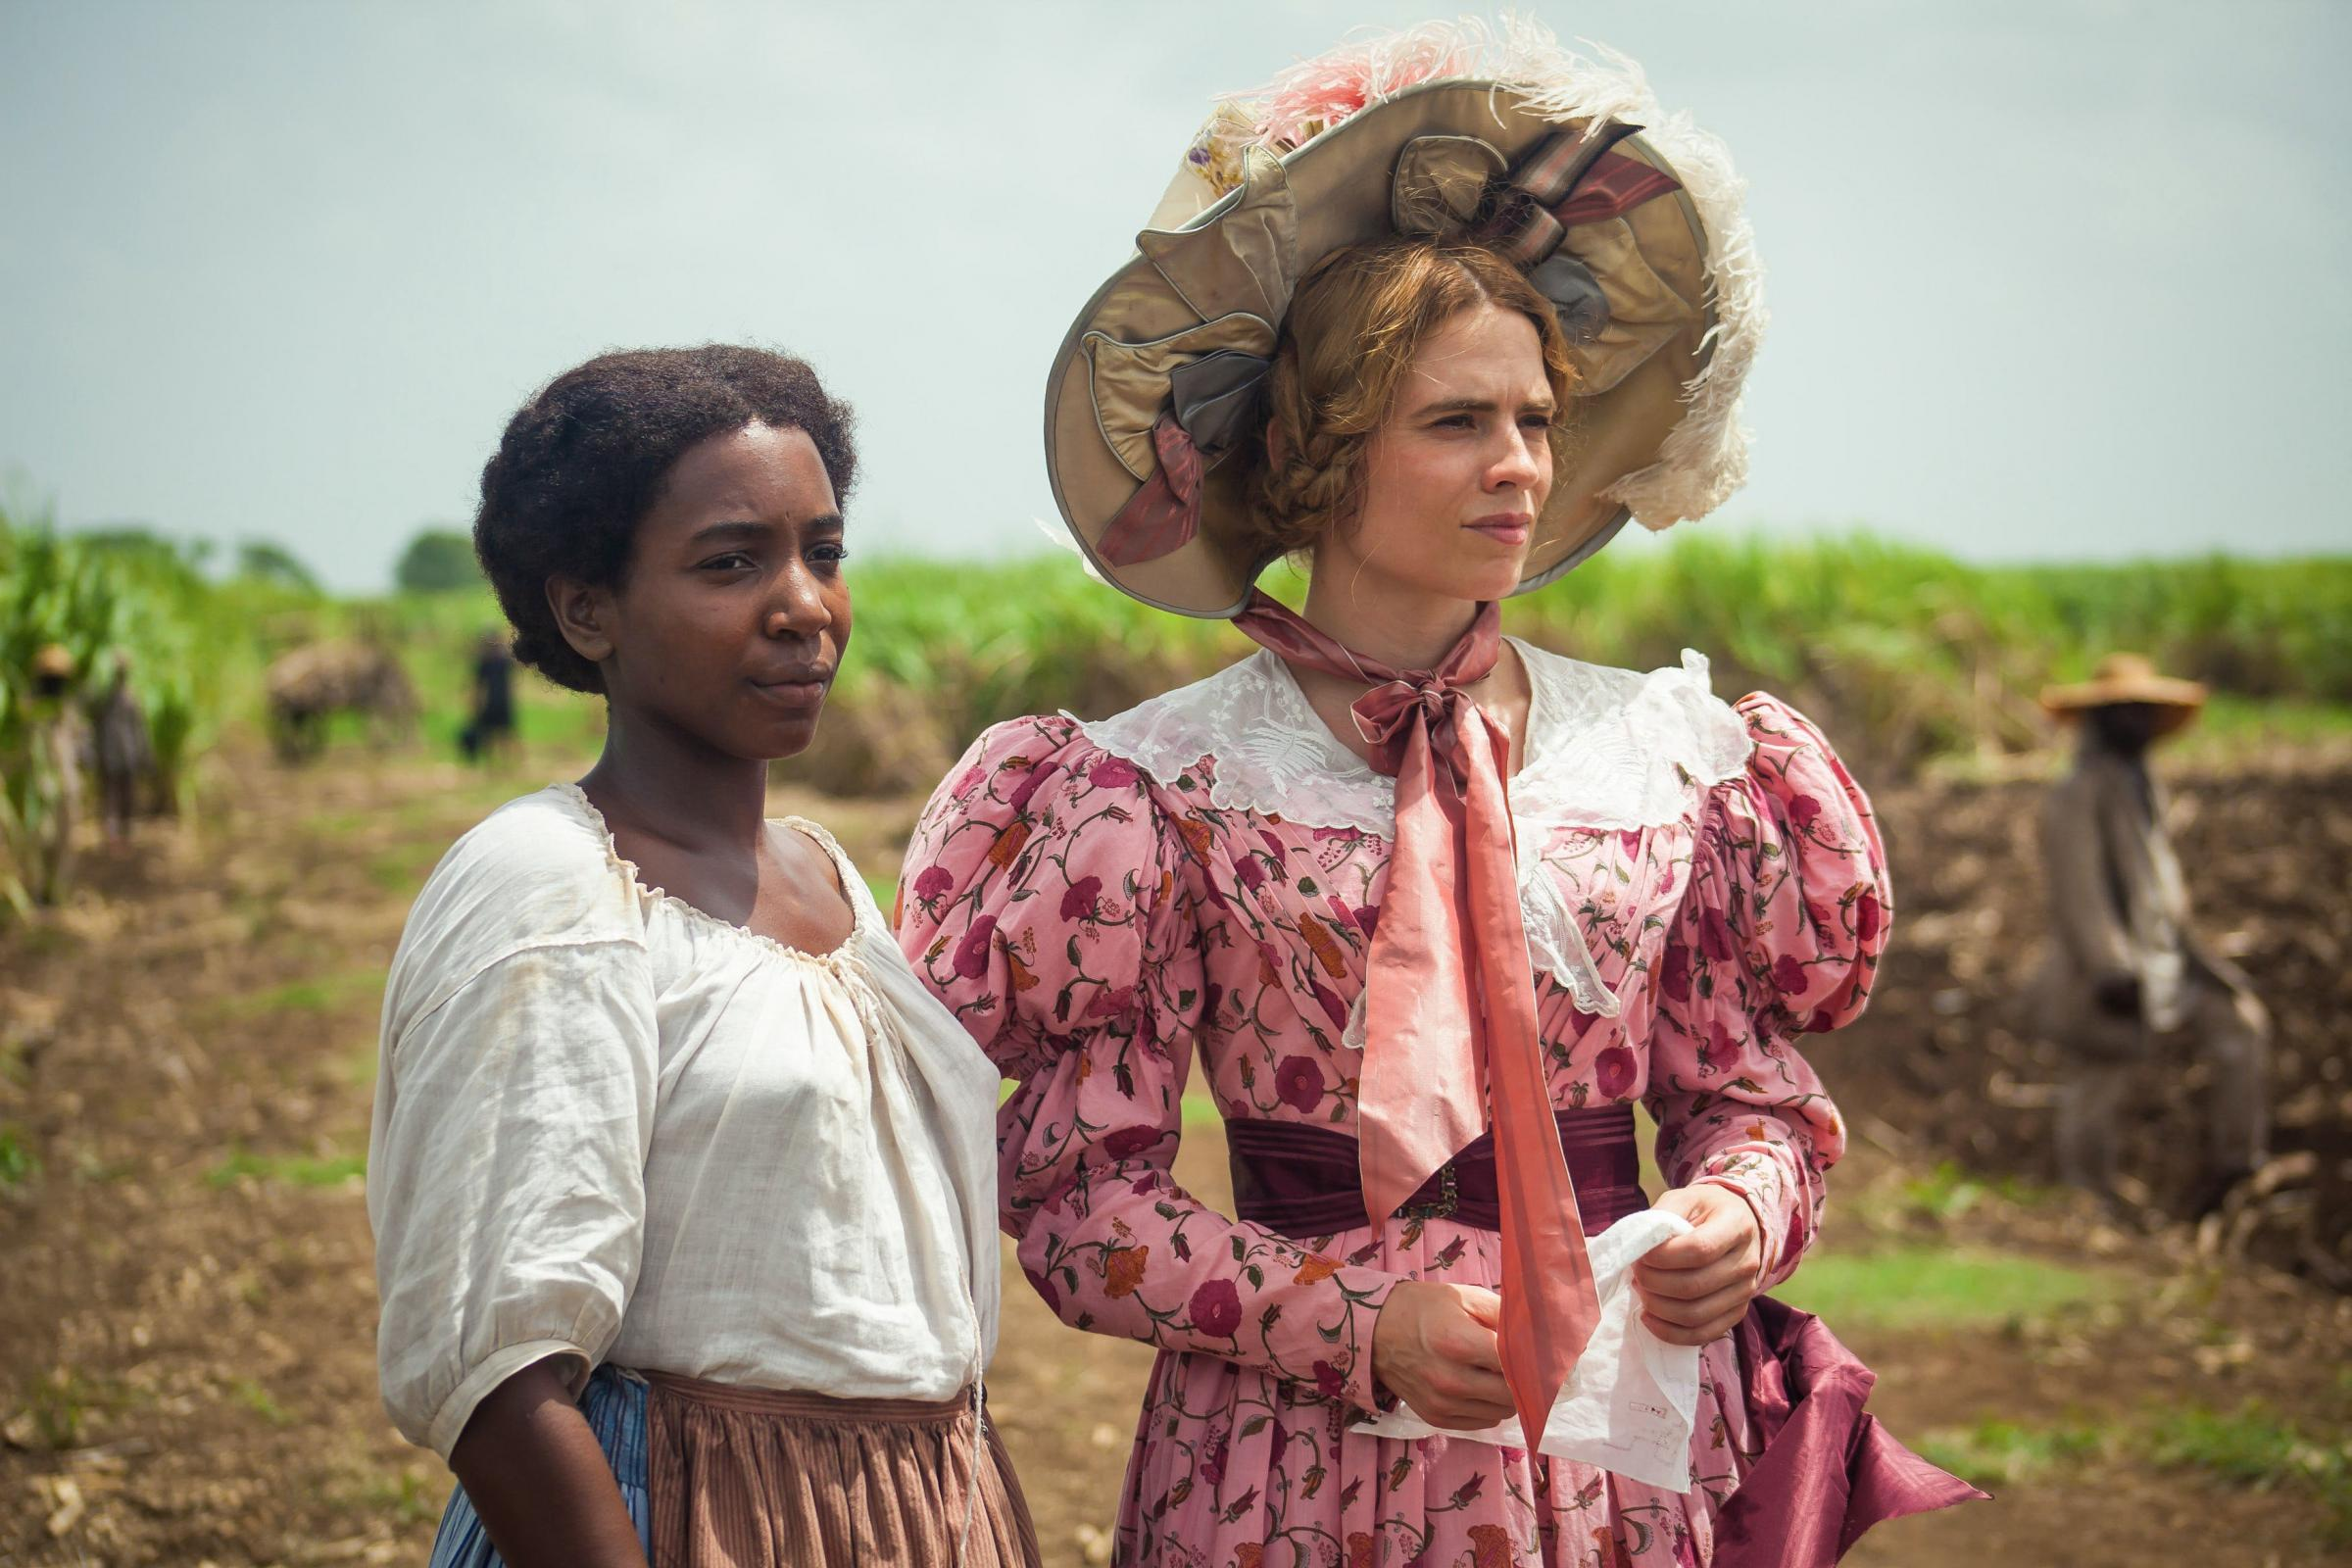 Tamara Lawrence, left, as July and Hayley Atwell as Caroline Mortimer in the new TV adaptation of Andrea Levy's best-selling novel The Long Song